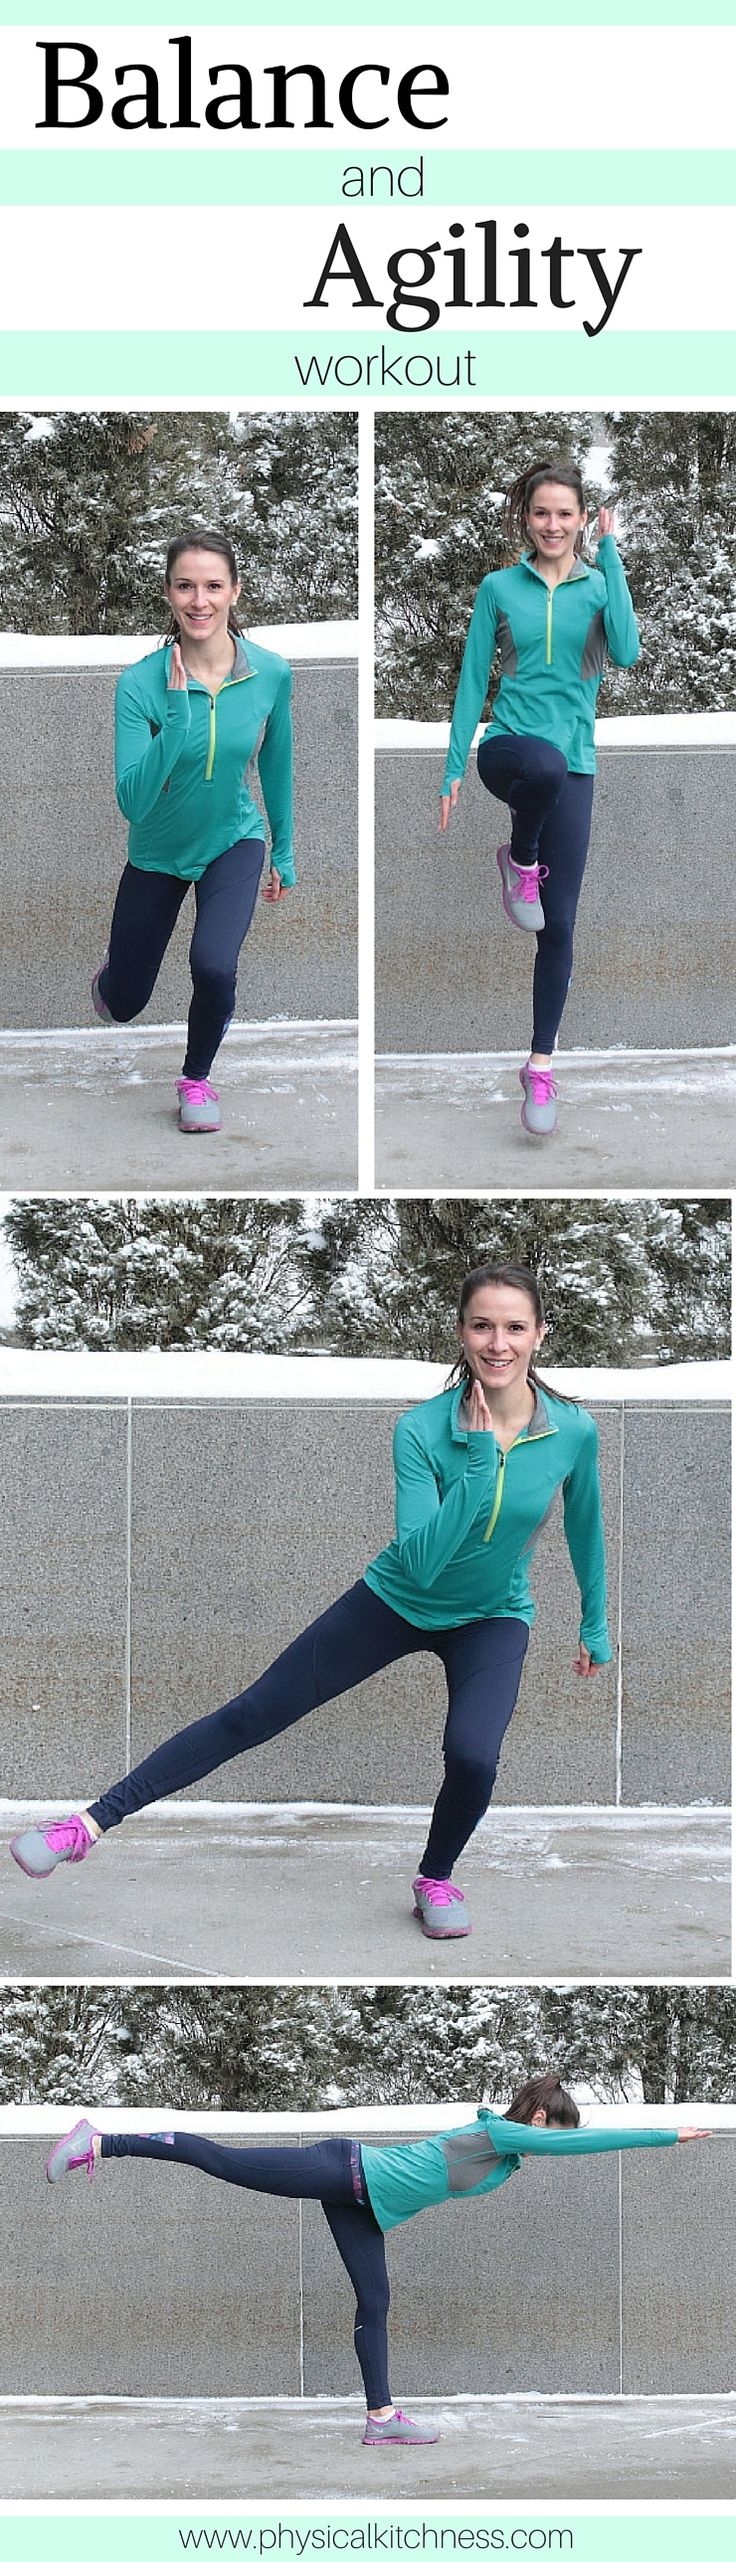 A workout focused on stability, coordination, strength, and endurance. Mix up your old routine with this balance and agility workout!